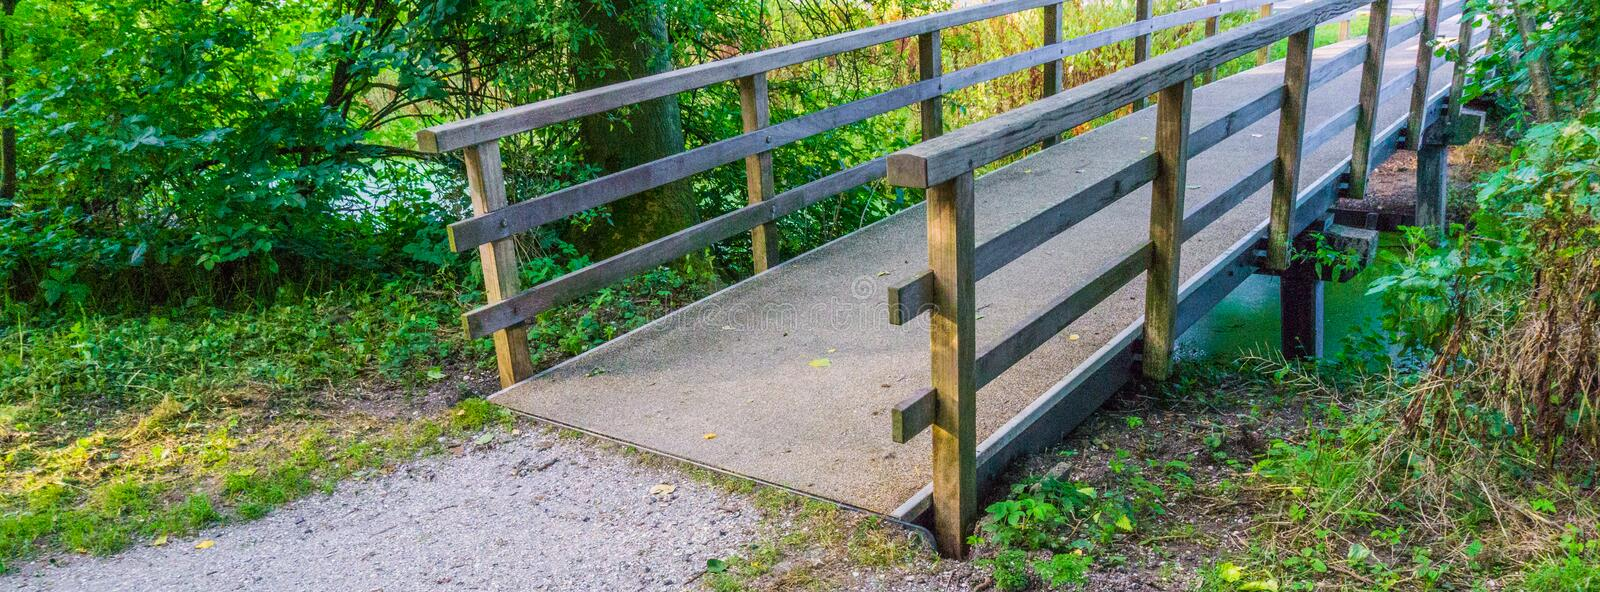 Stone path with wooden bridge royalty free stock images